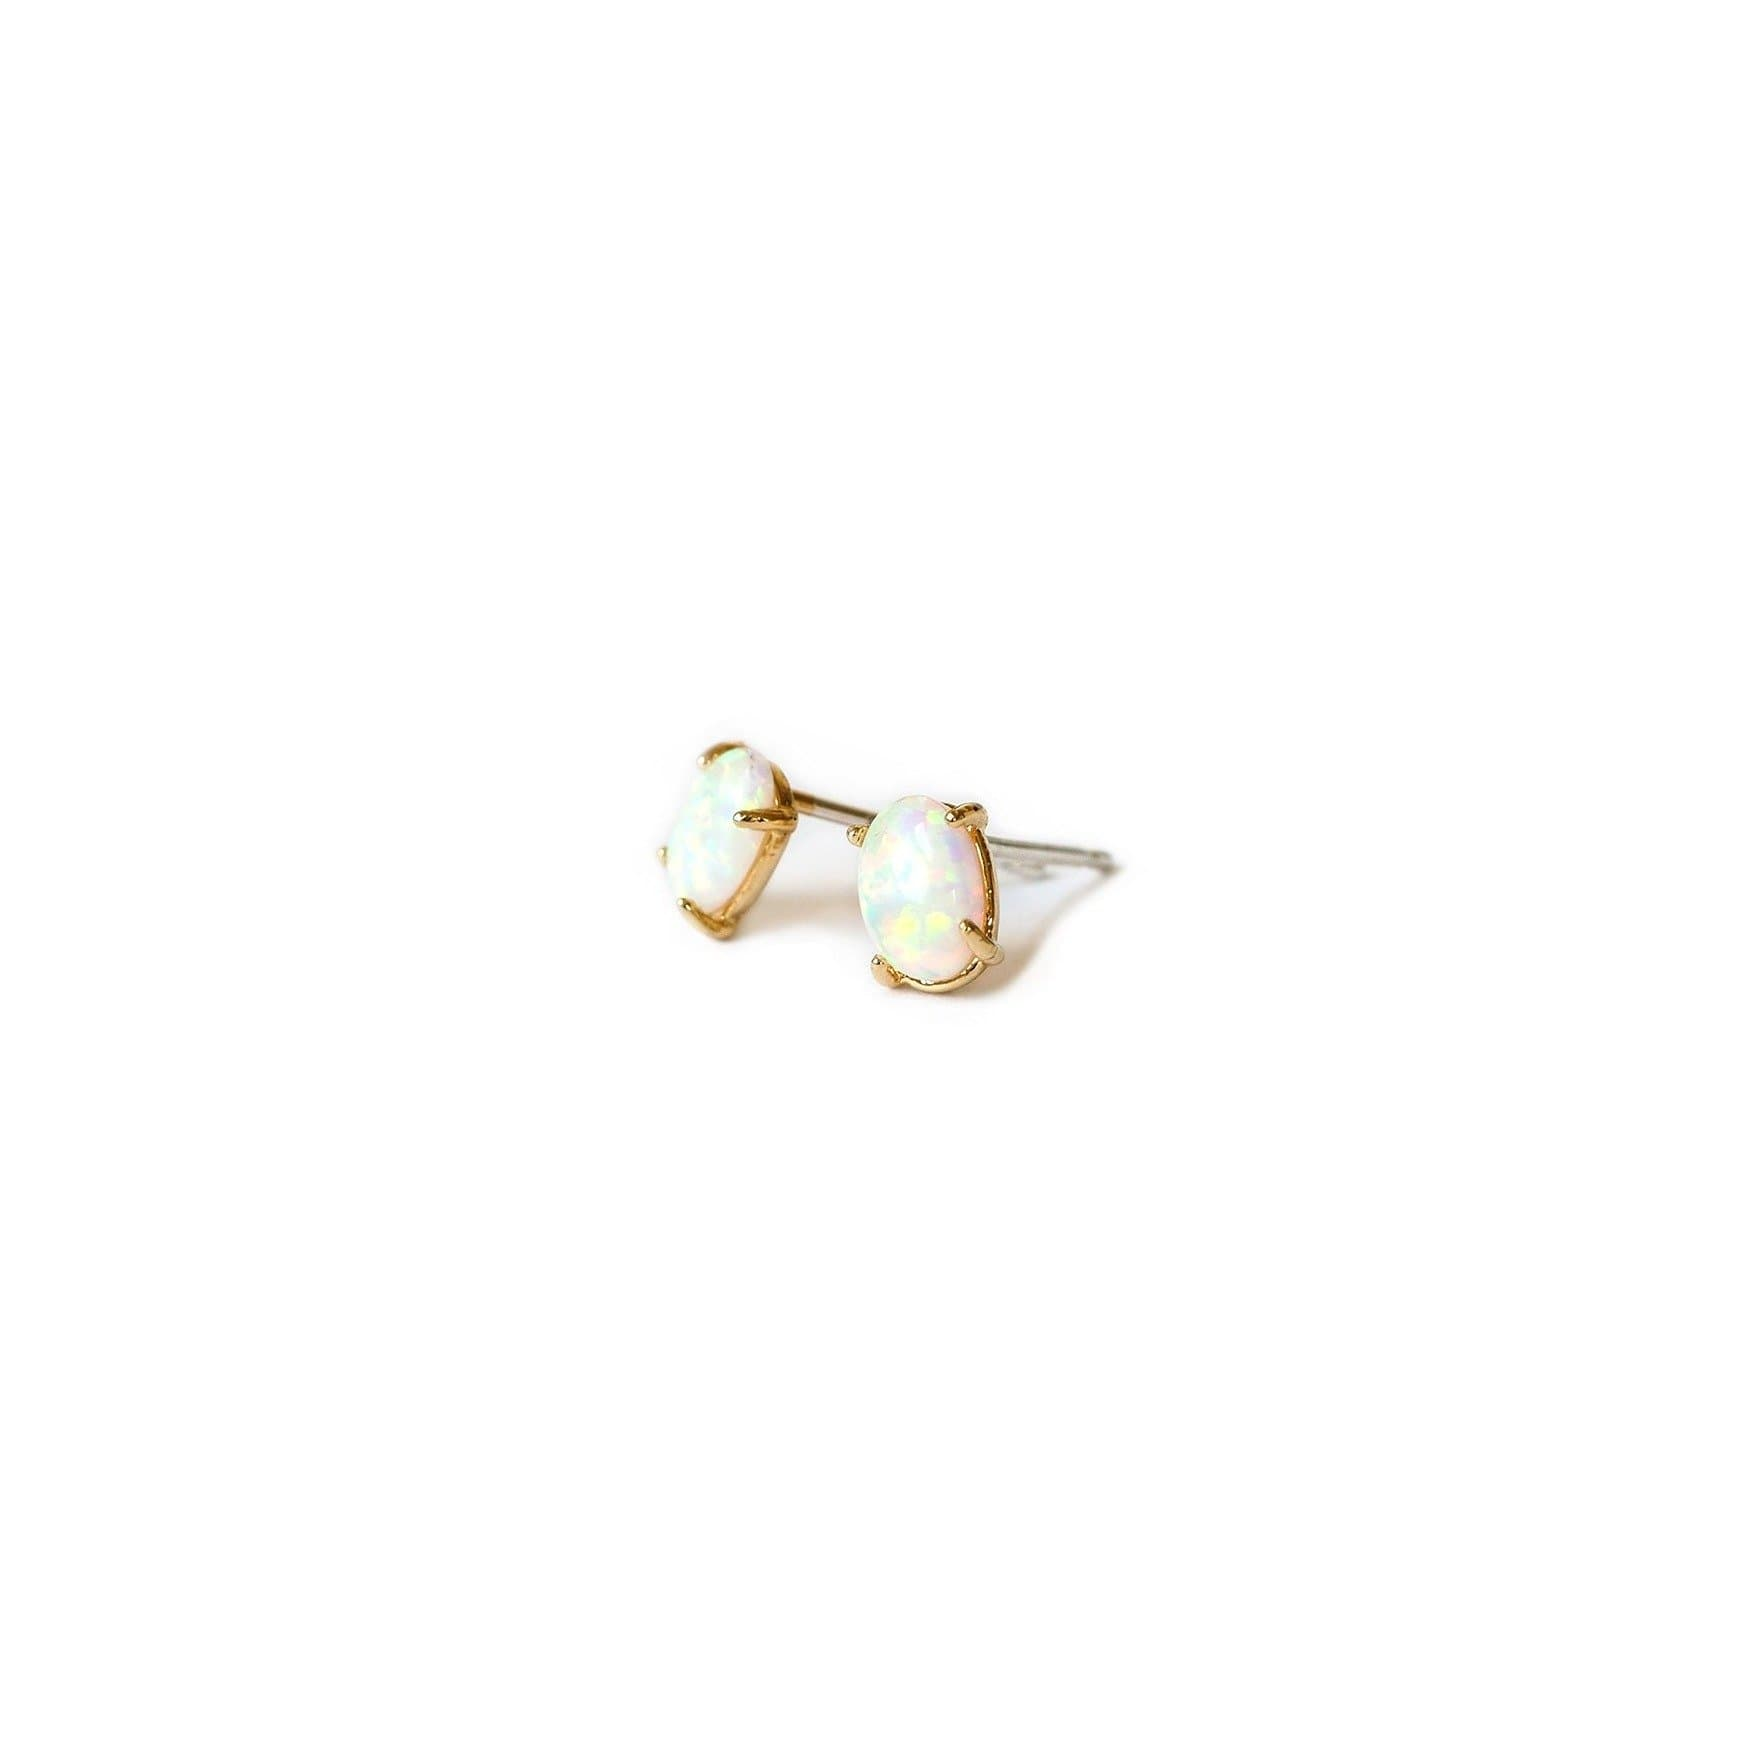 Opal Stud Earrings, Earrings, adorn512, adorn512